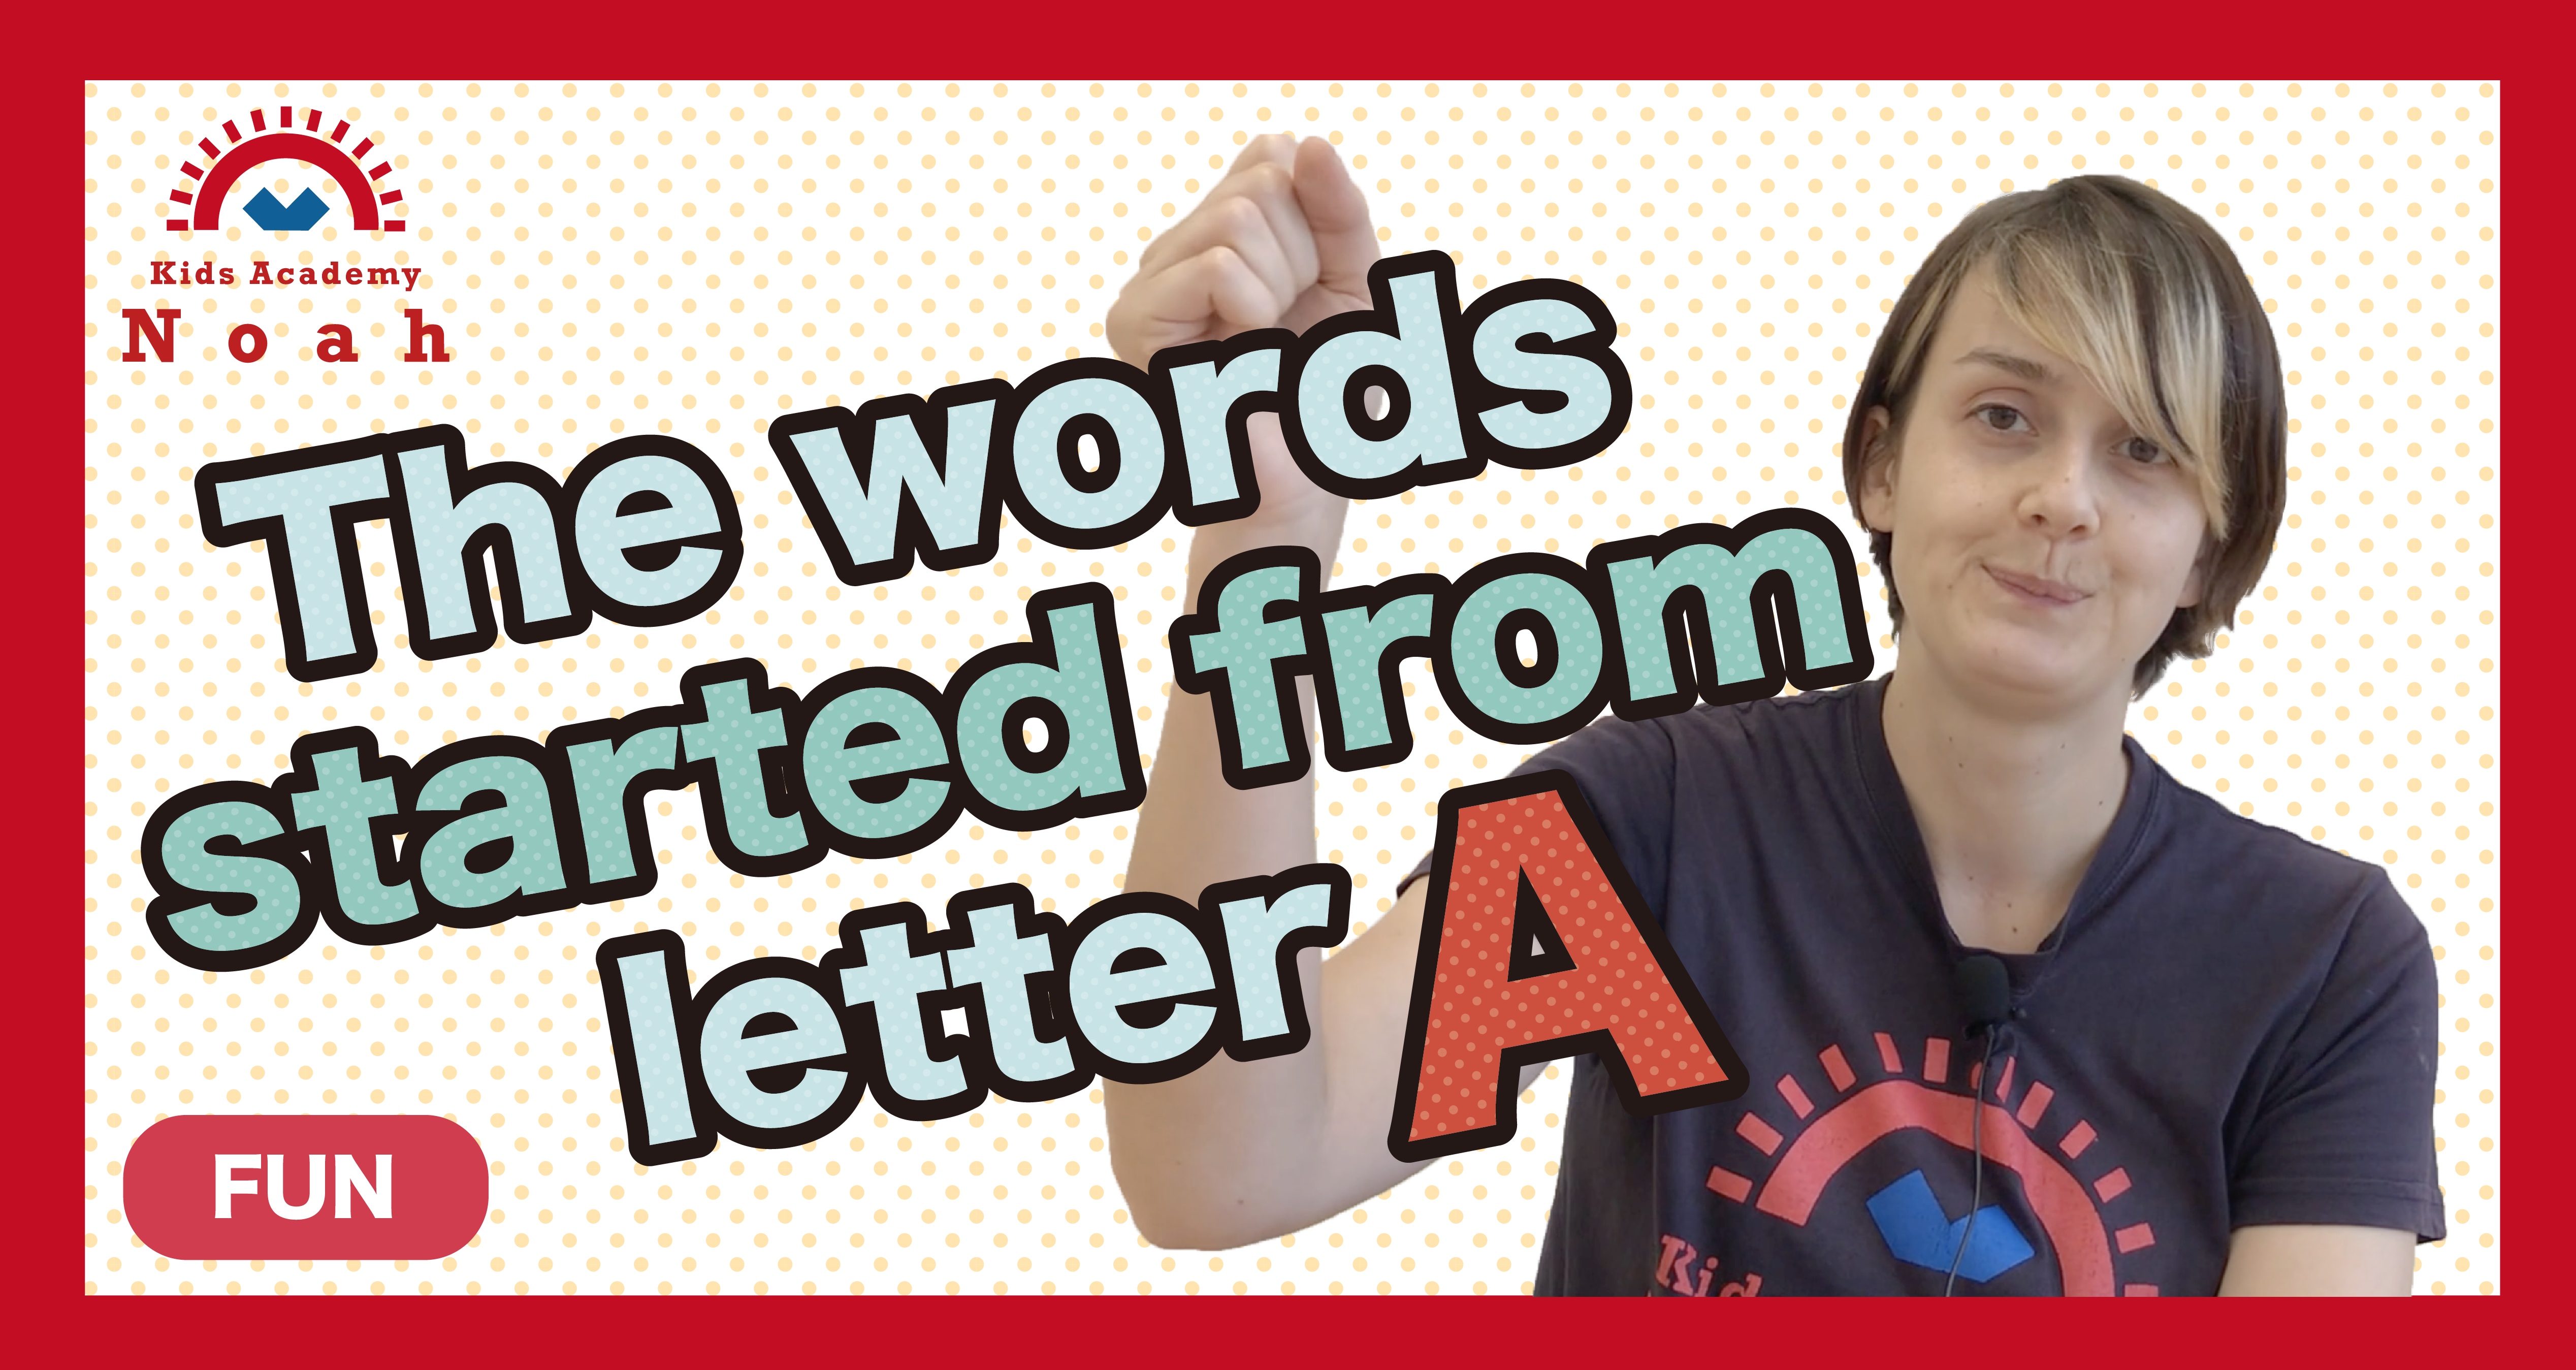 The words started from letter A-FUN-